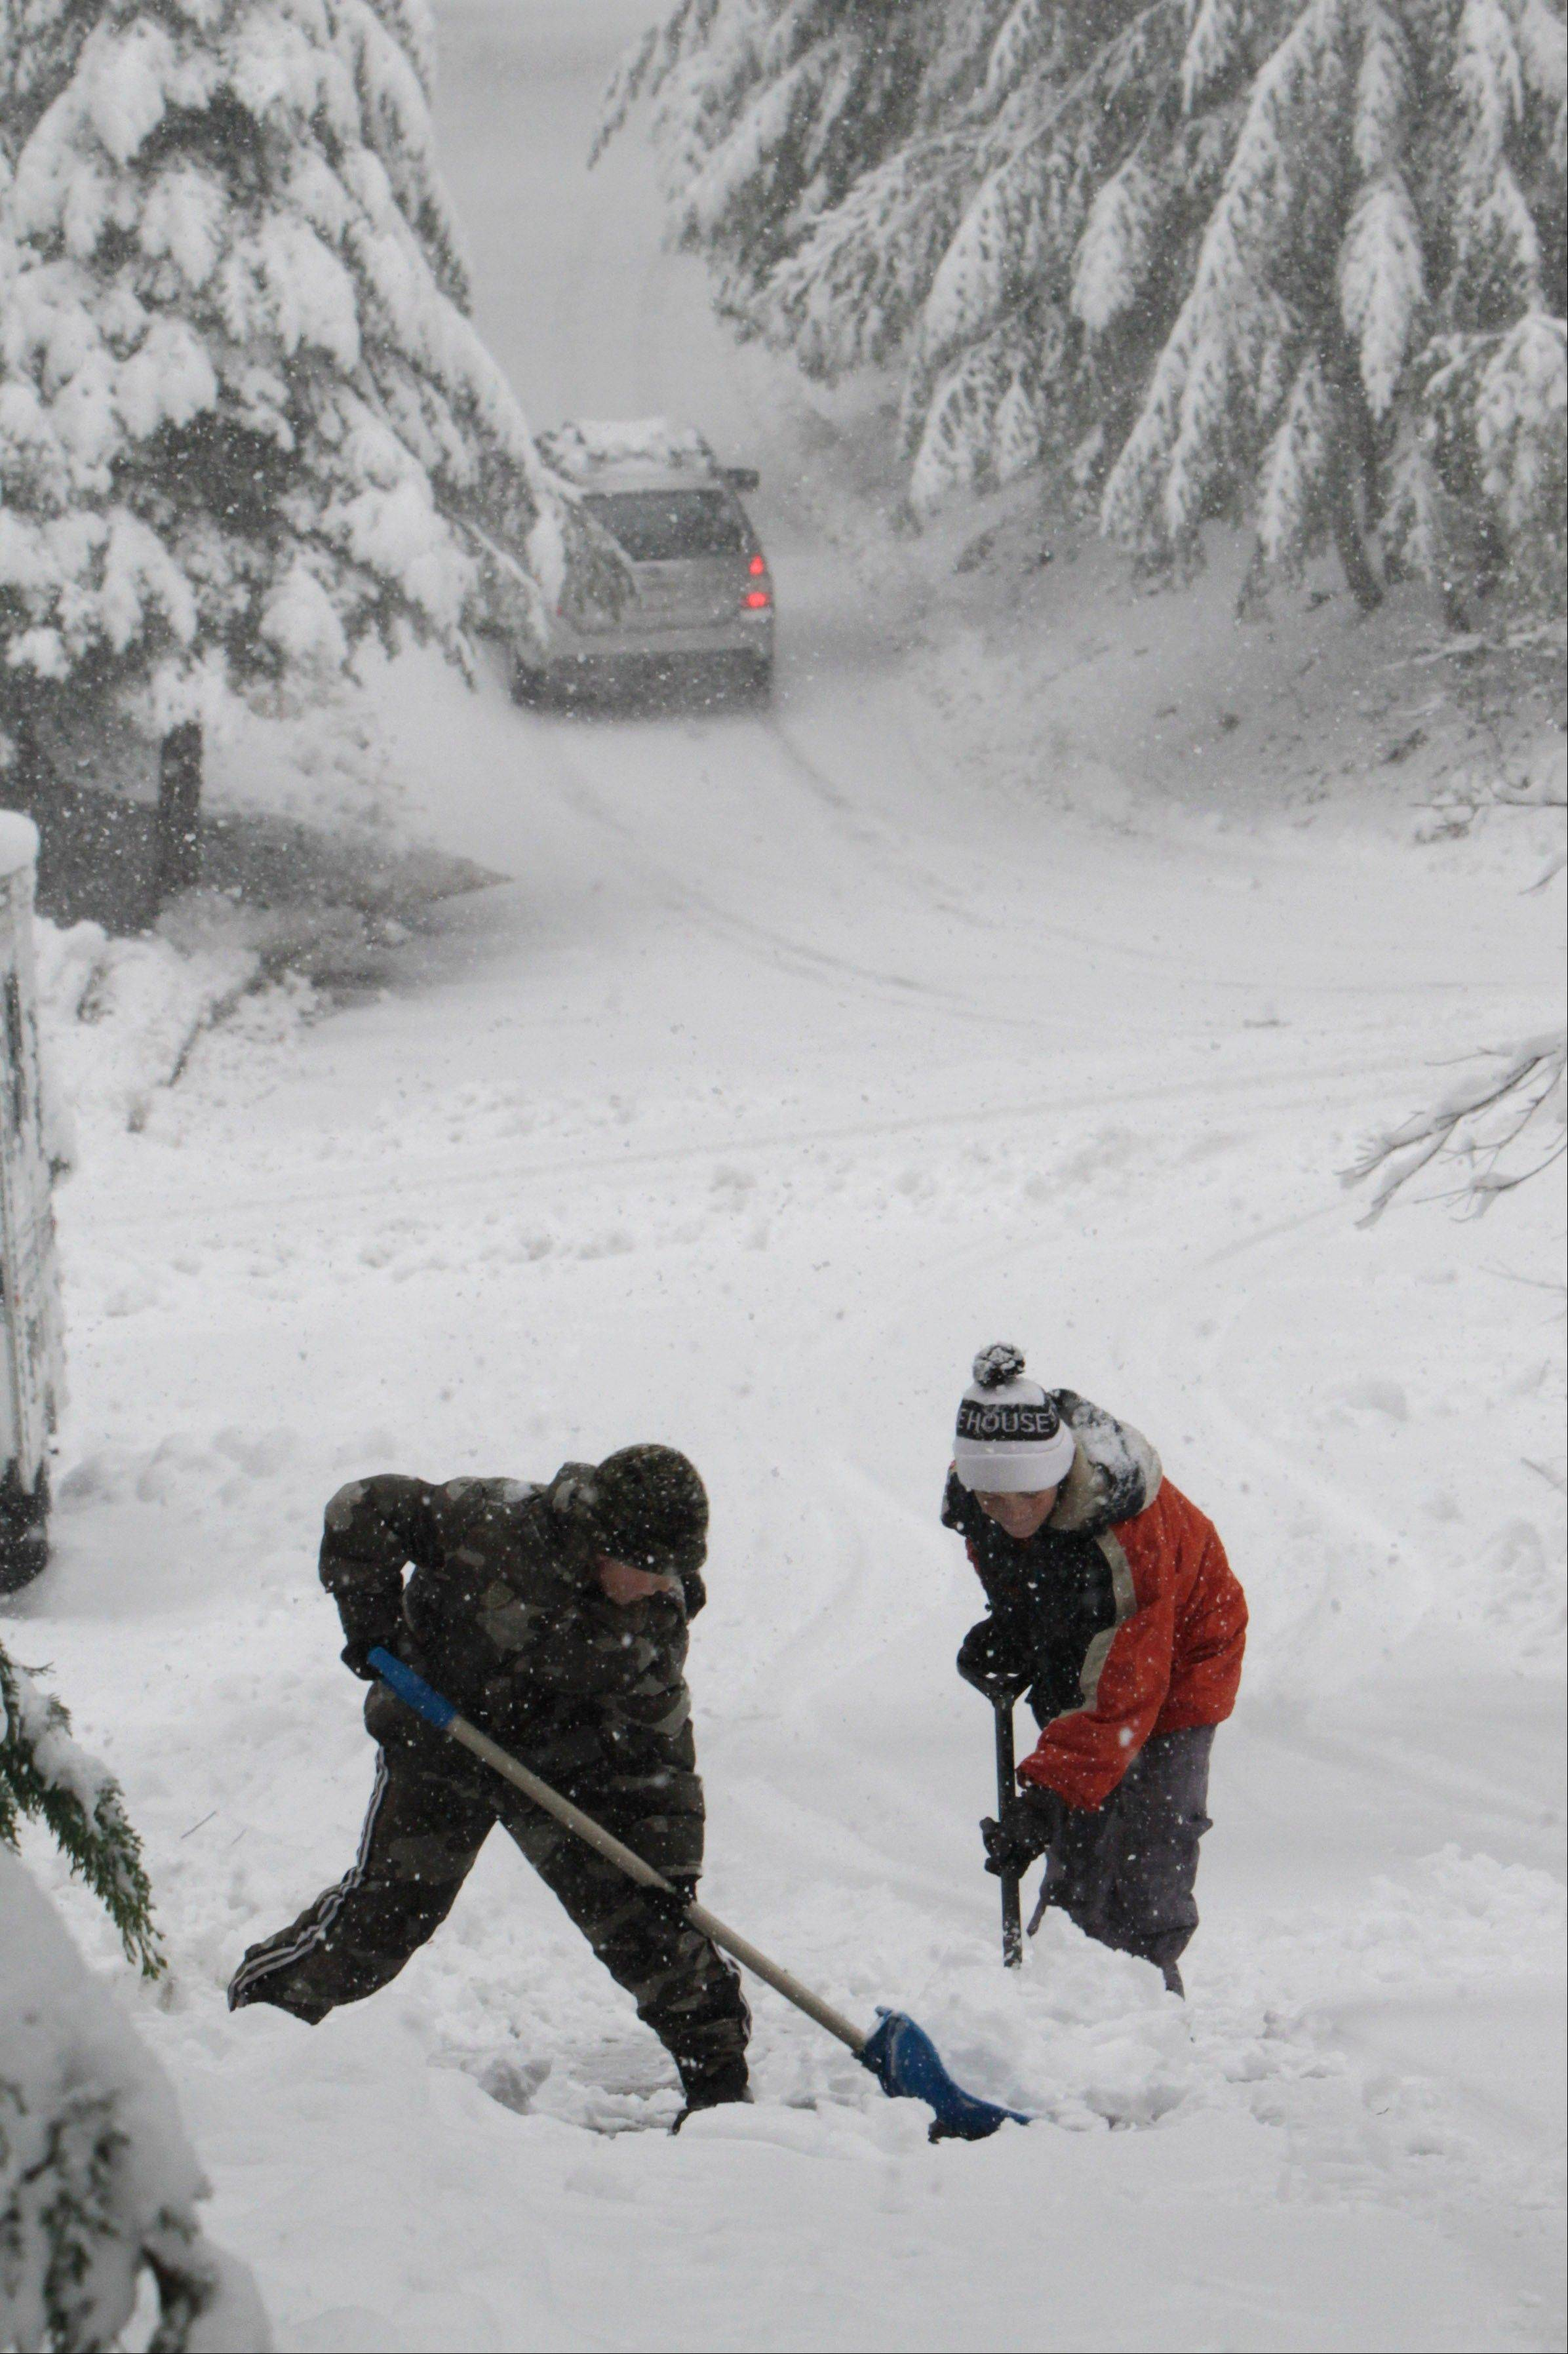 CA walloped as snow falls over parts of north U.S.